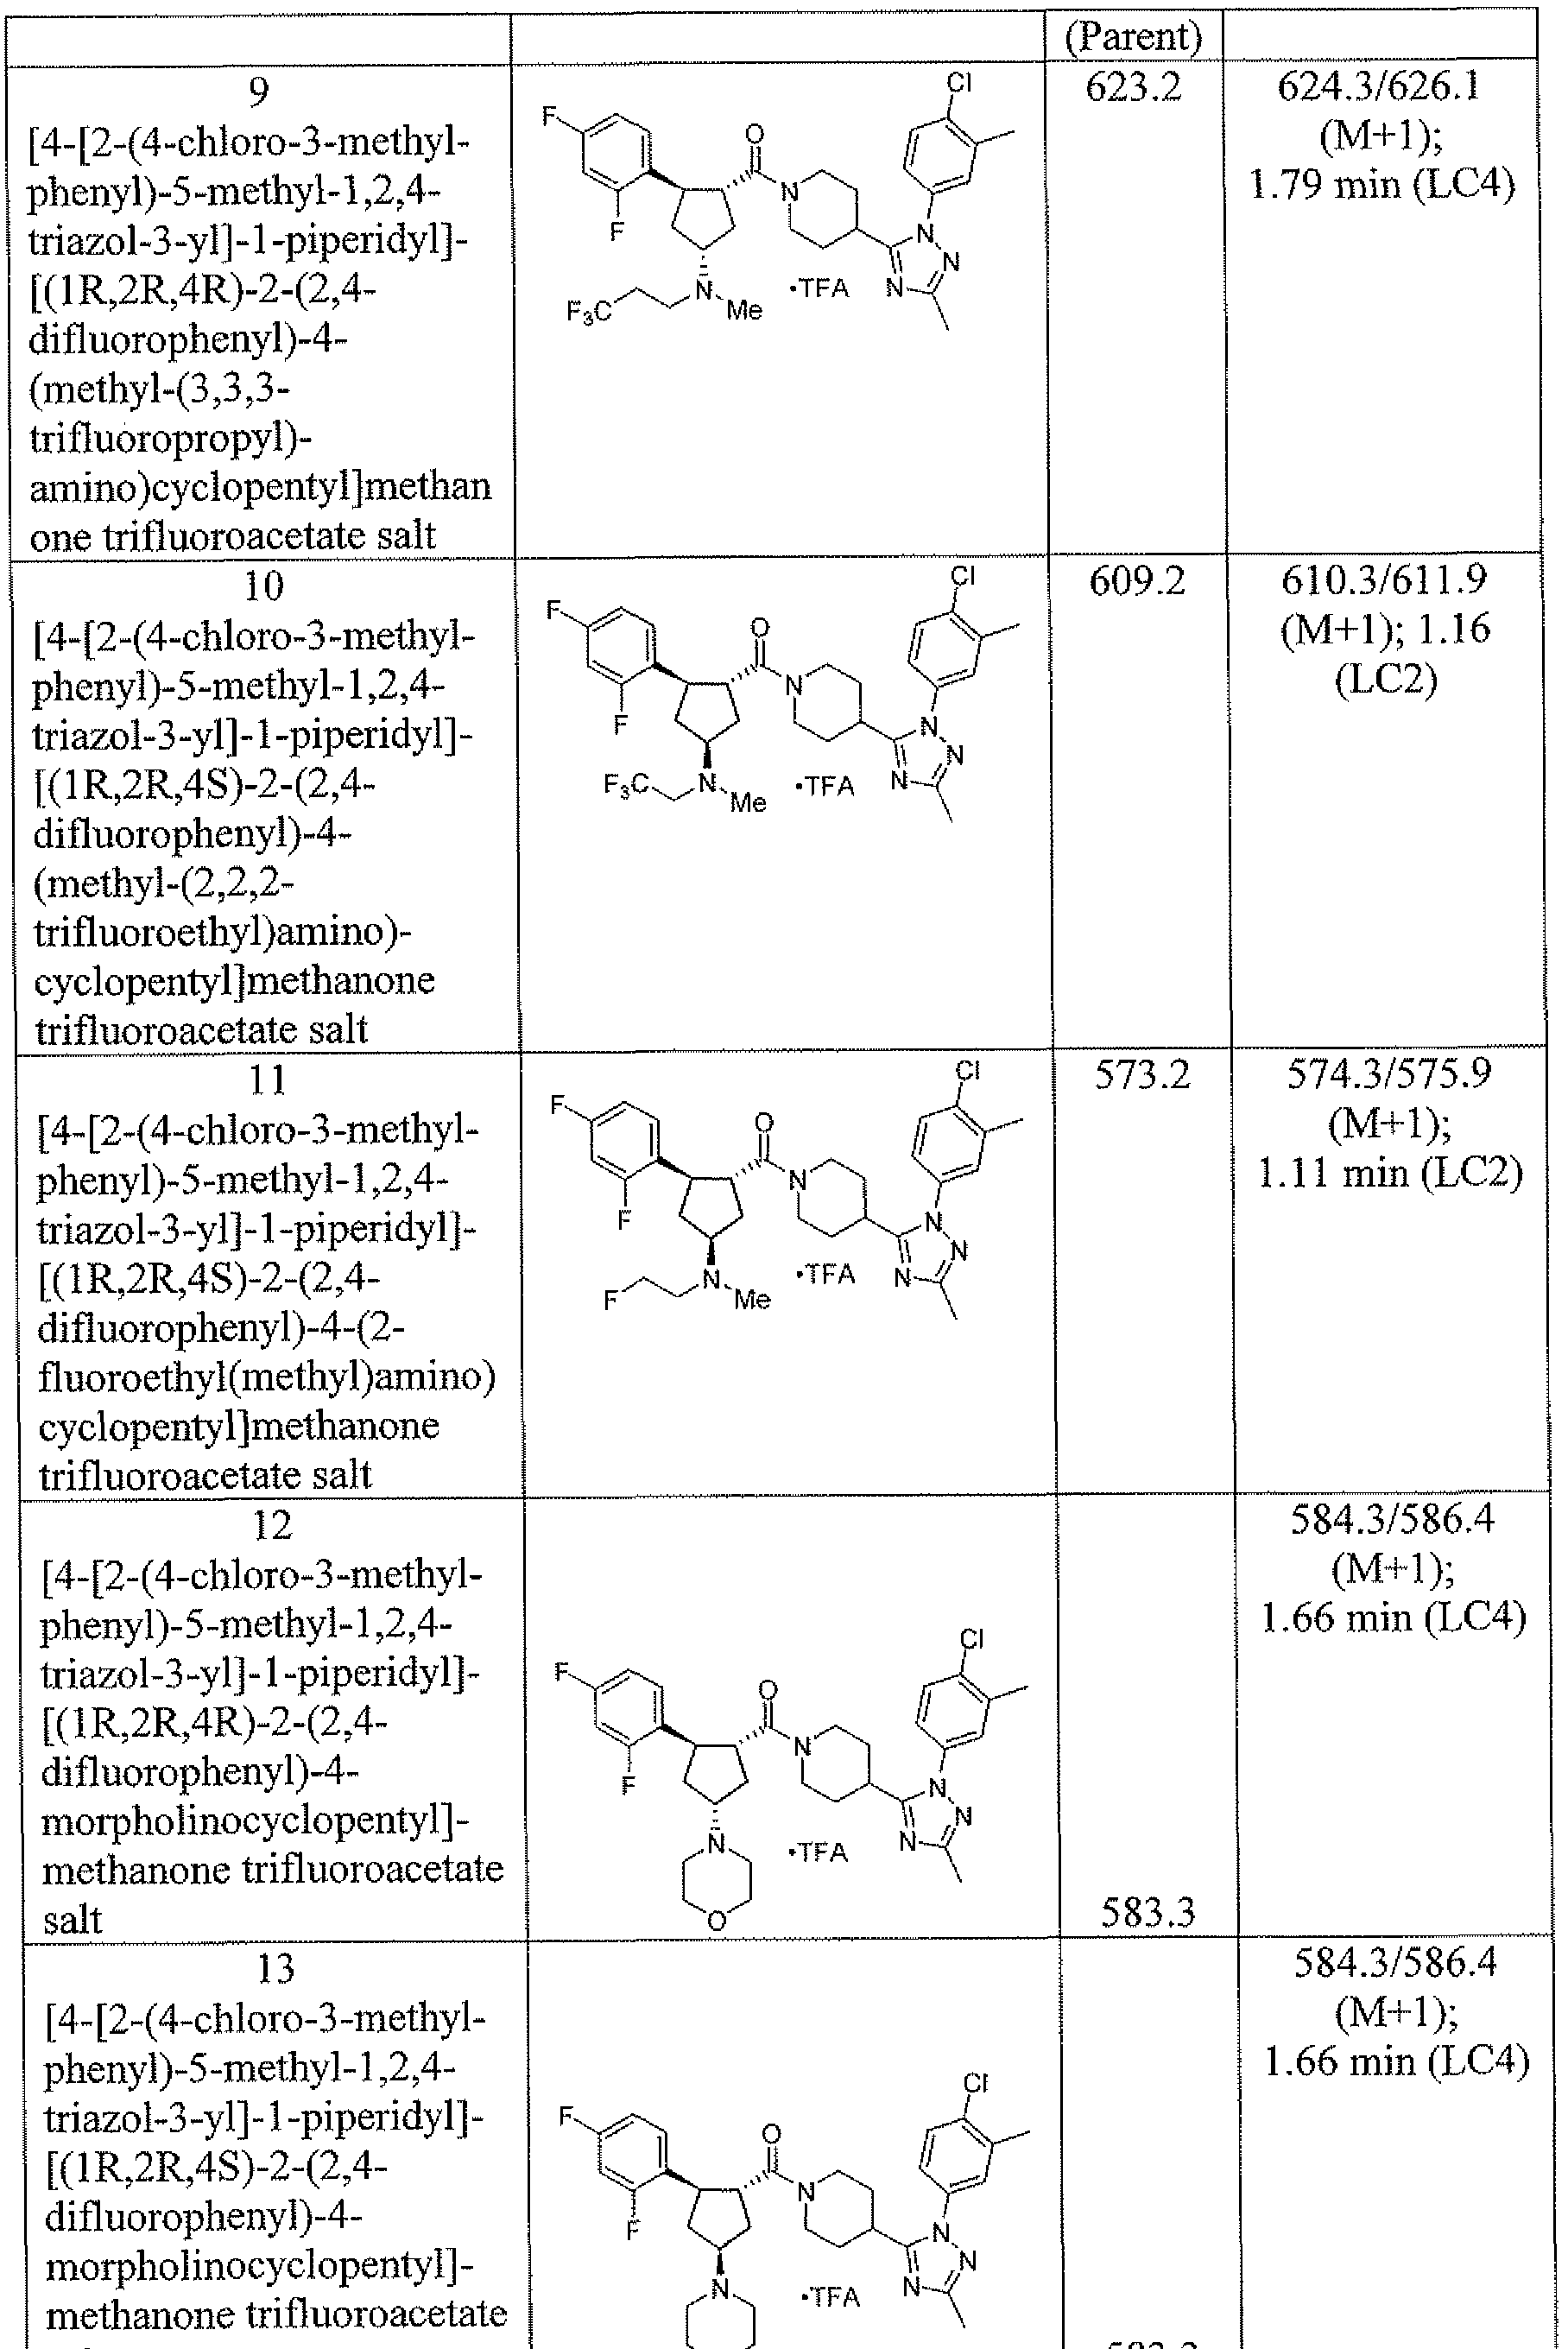 cephalexin drug interactions with methadone